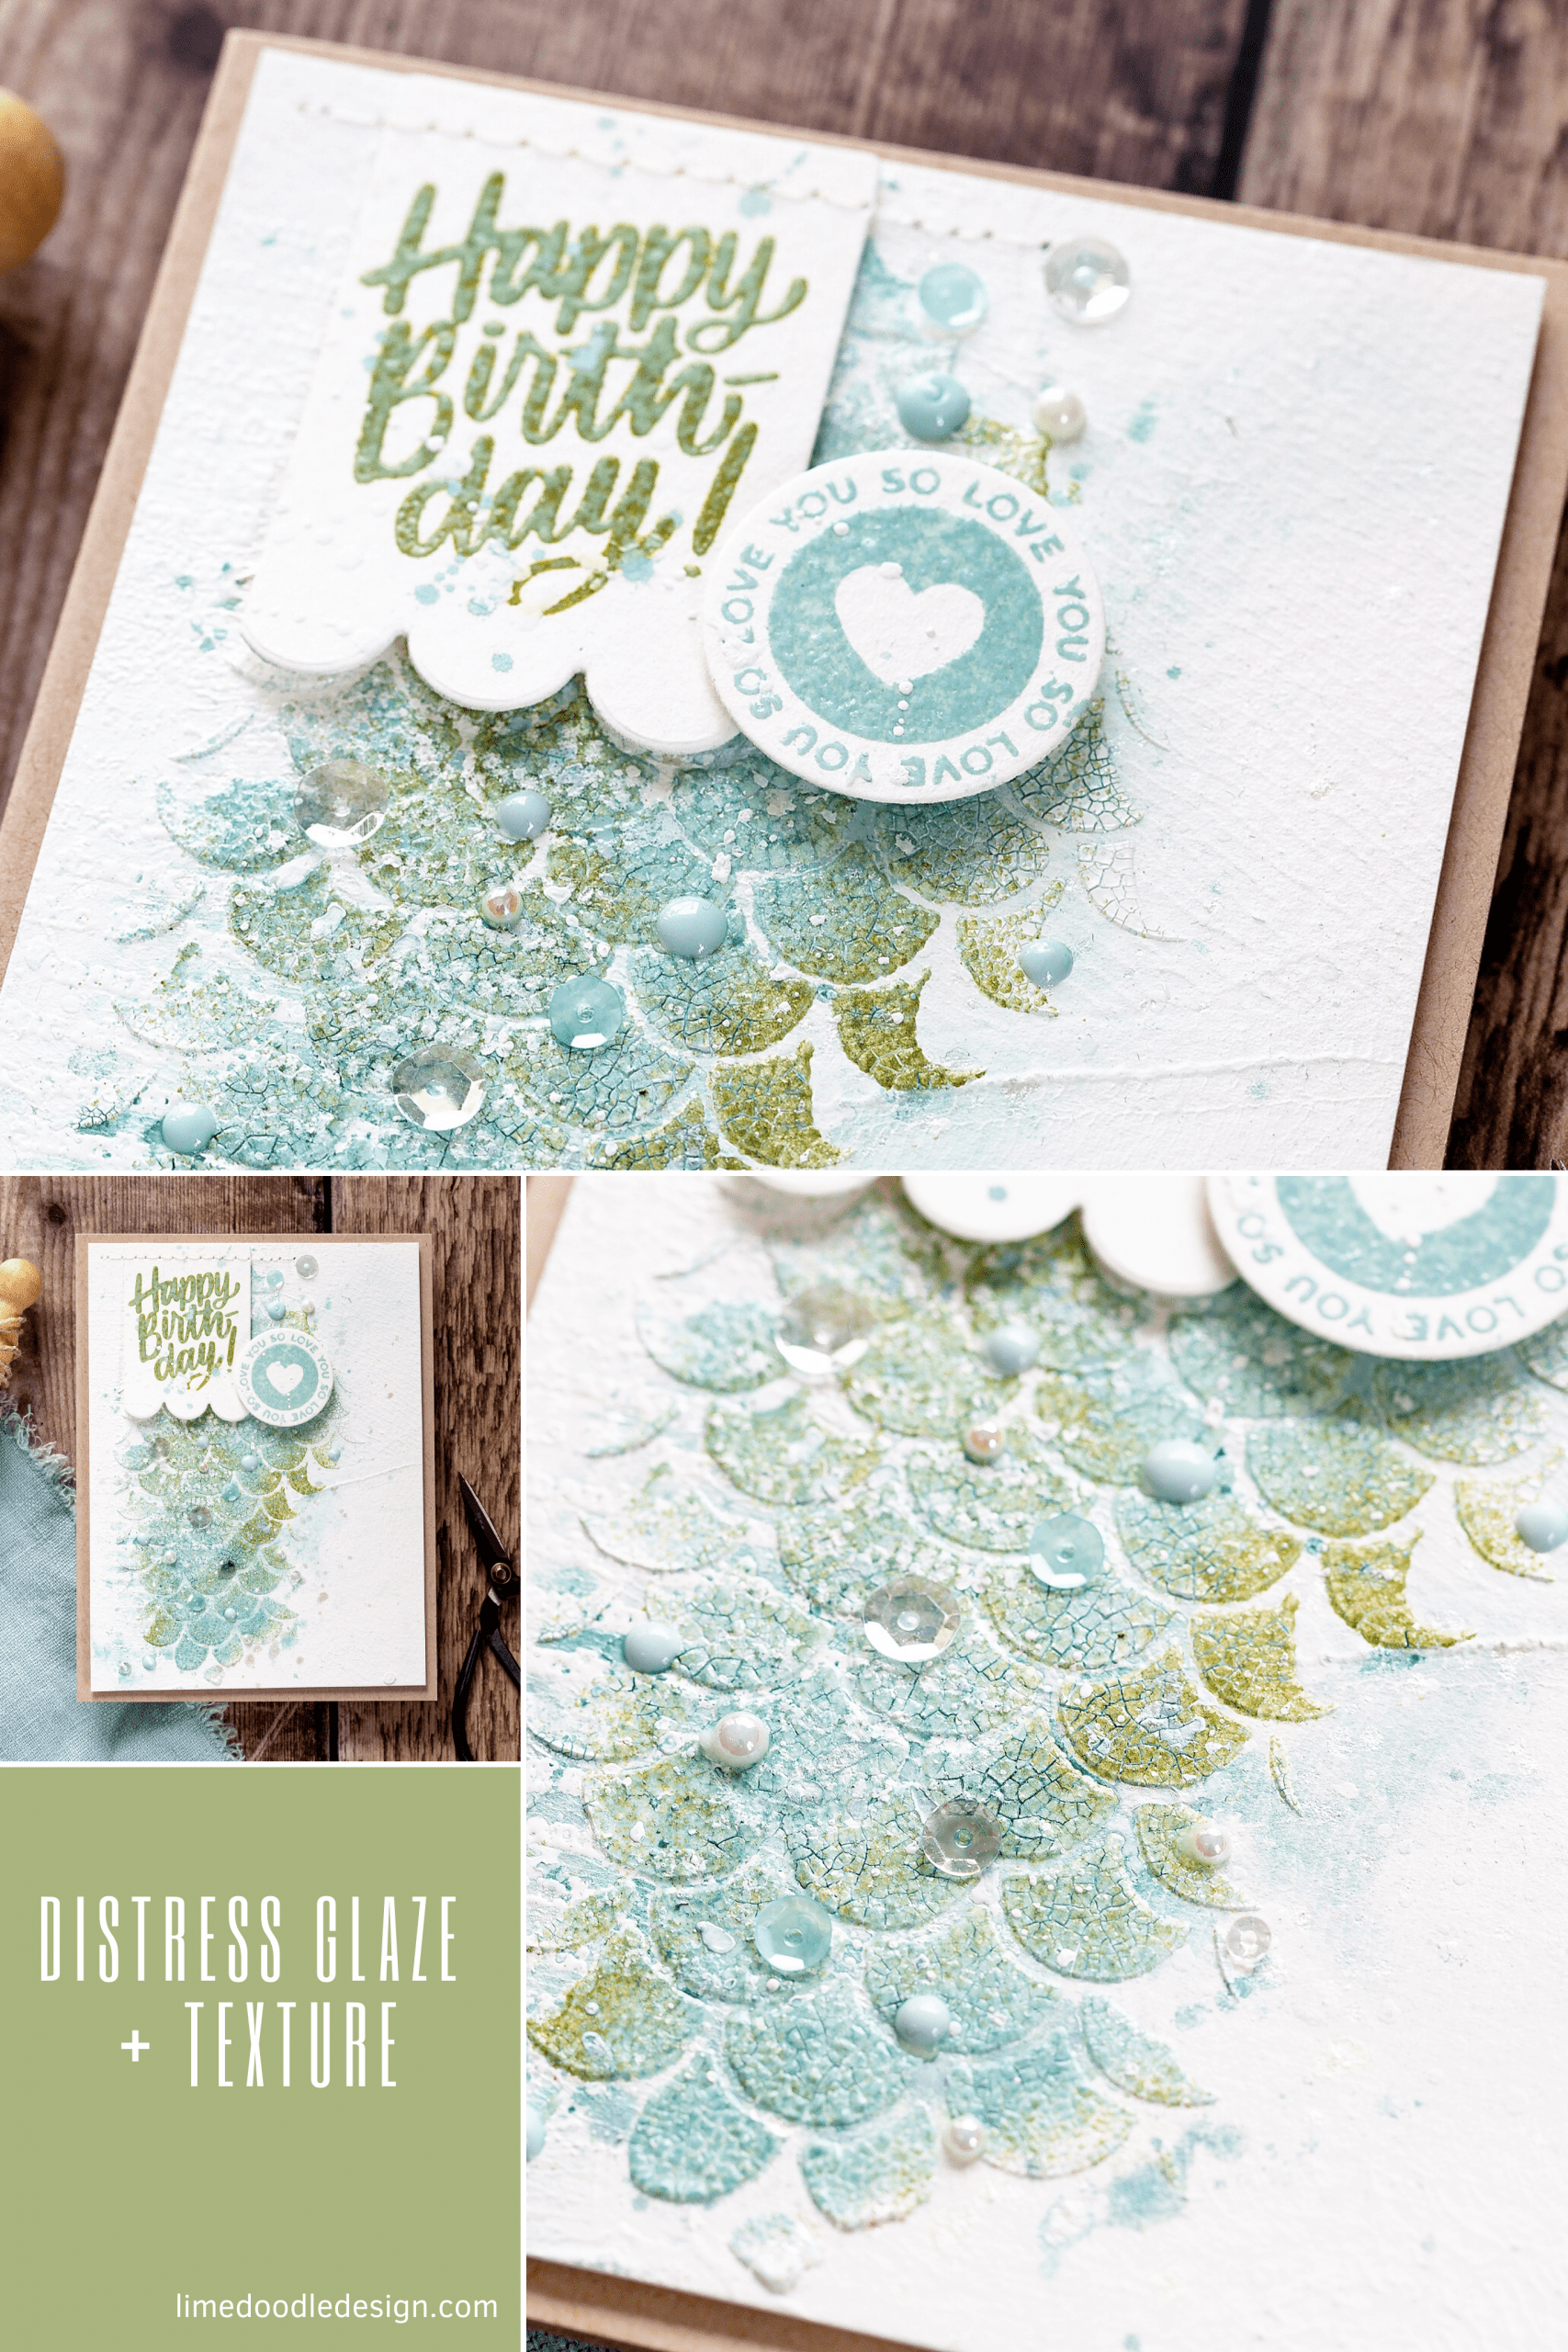 Video tutorial experimenting with Tim Holtz Distress Embossing Glaze + Texture Paste. Handmade card by Debby Hughes using supplies from Simon Says Stamp and Tim Holtz #distress #homemade